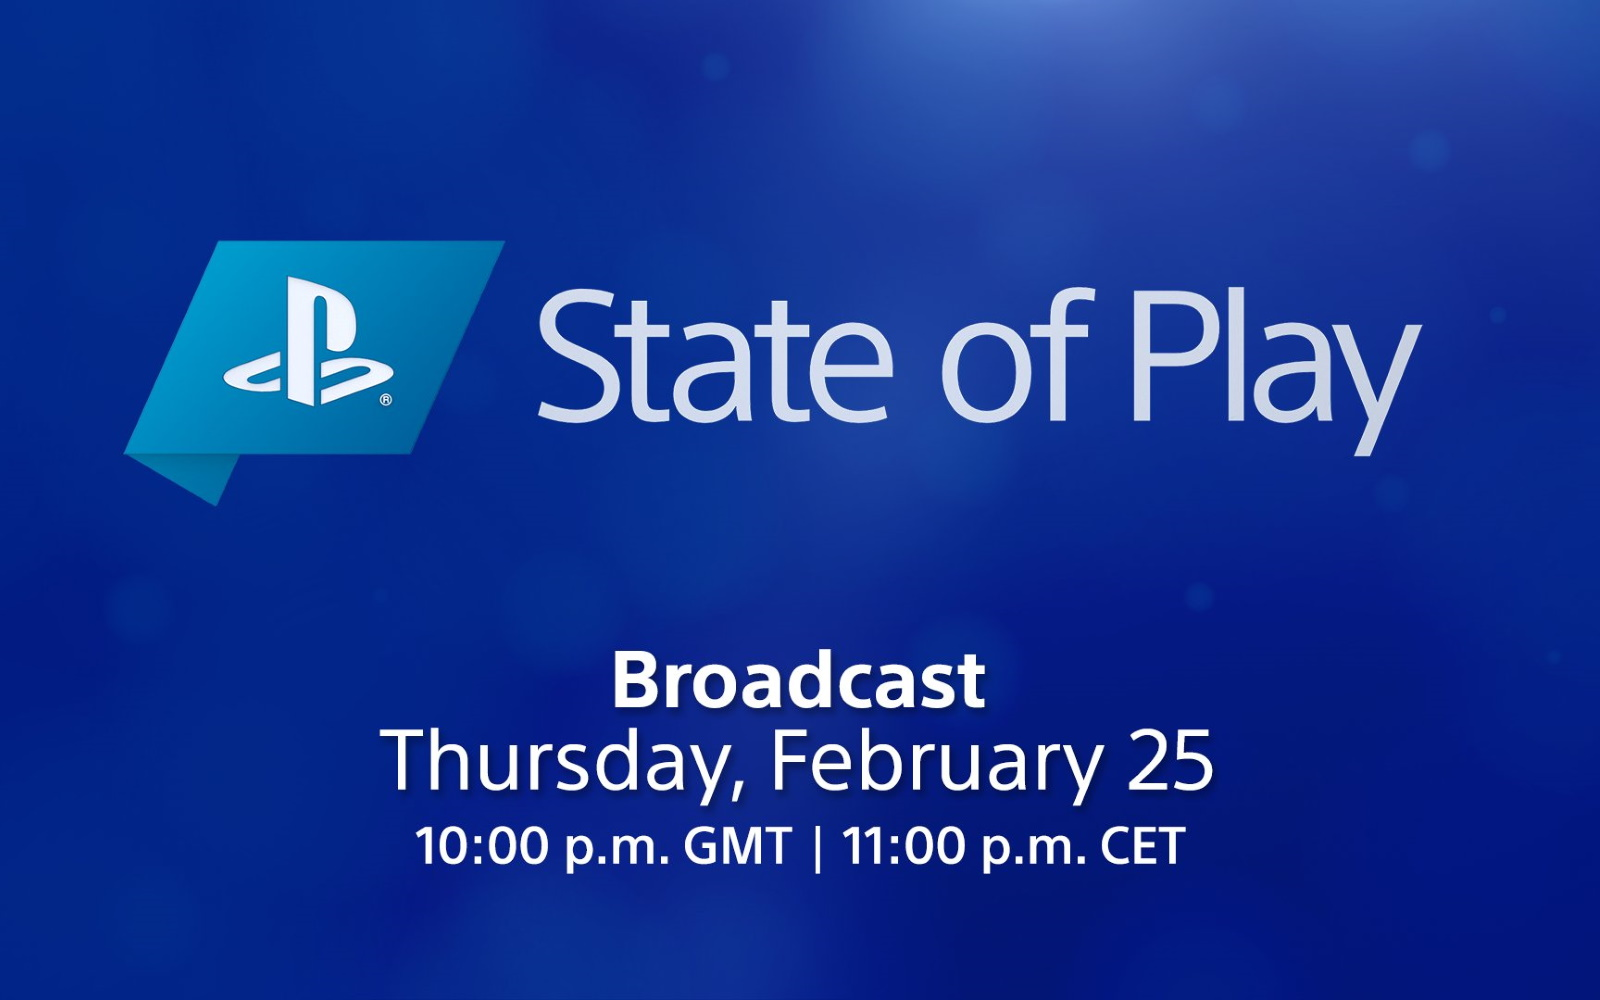 A New State Of Play Coming This Week